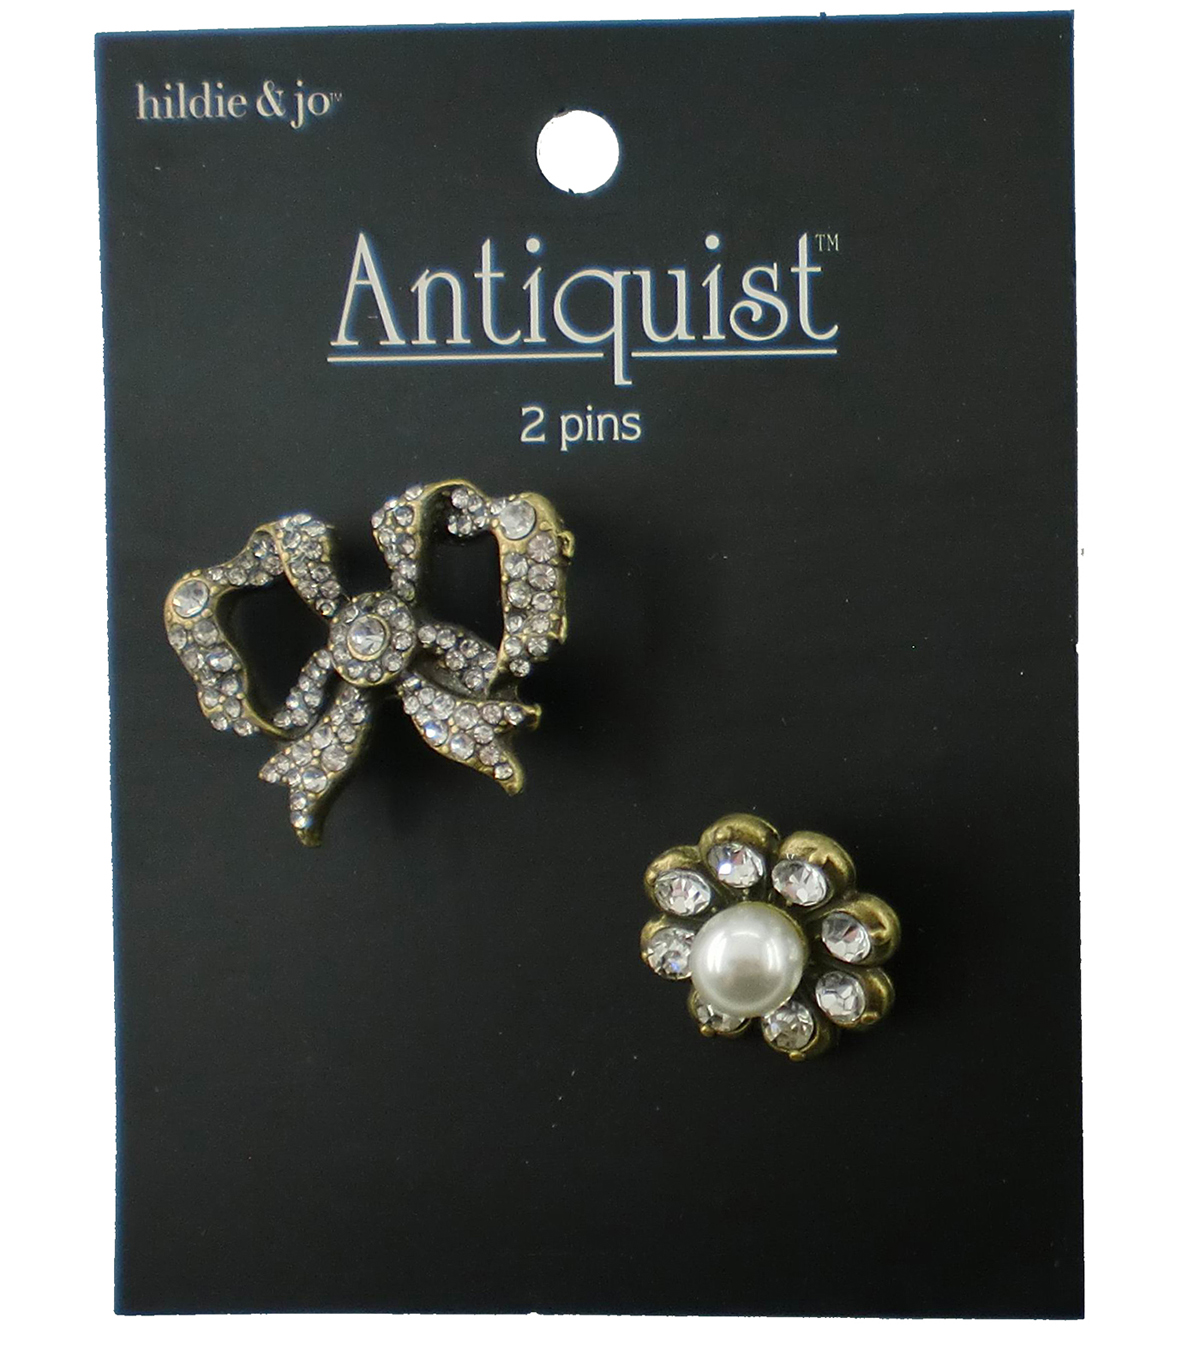 hildie & jo Antiquist 2 Pack Bow Antique Gold Pins-Clear Crystals